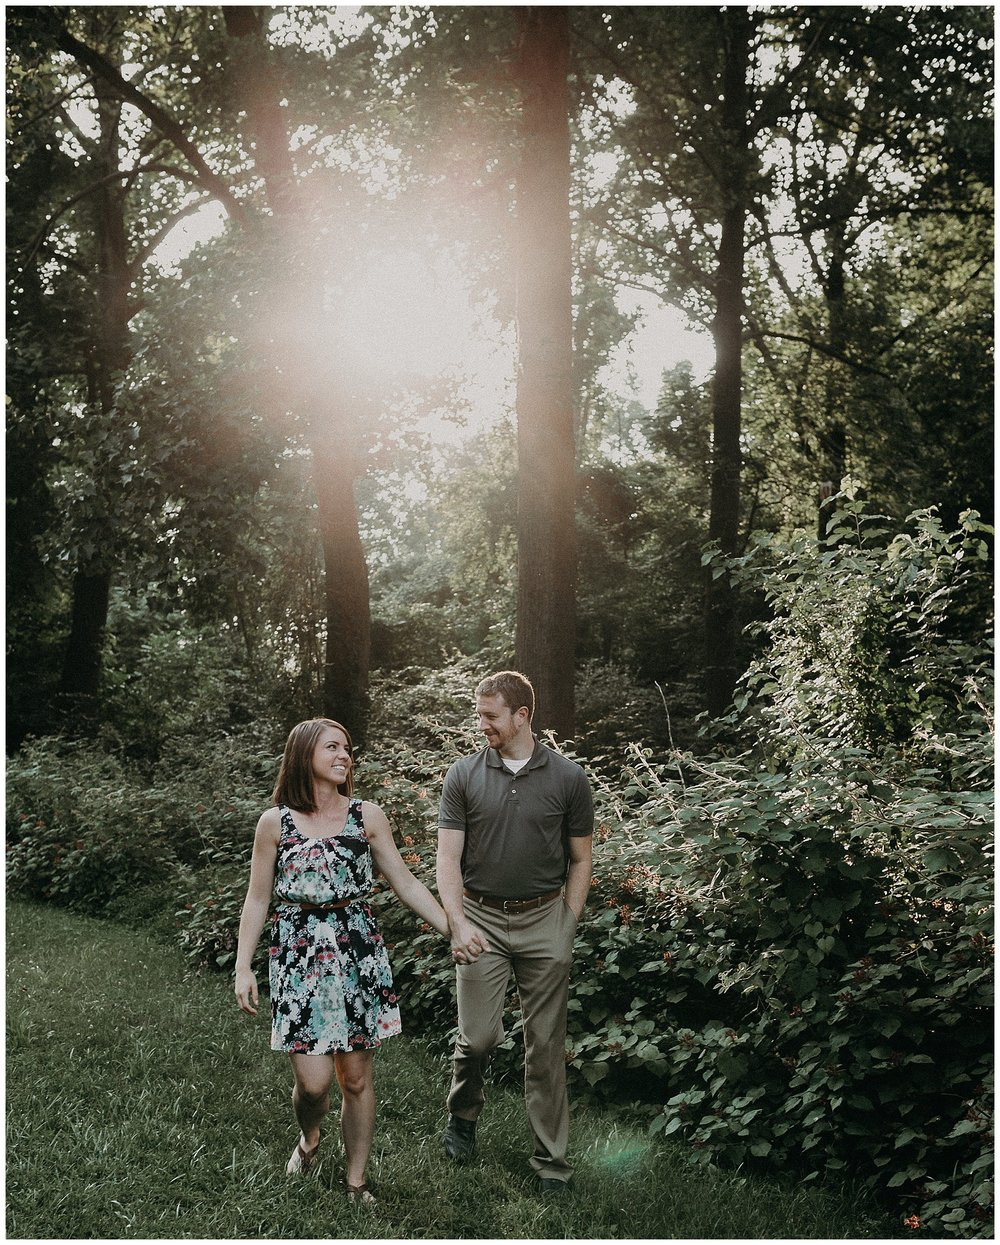 Summer sunset fun and loving Engagement Session at Pinnacle Overlook in Holtwood, Lancaster County Pennsyovania_0148.jpg